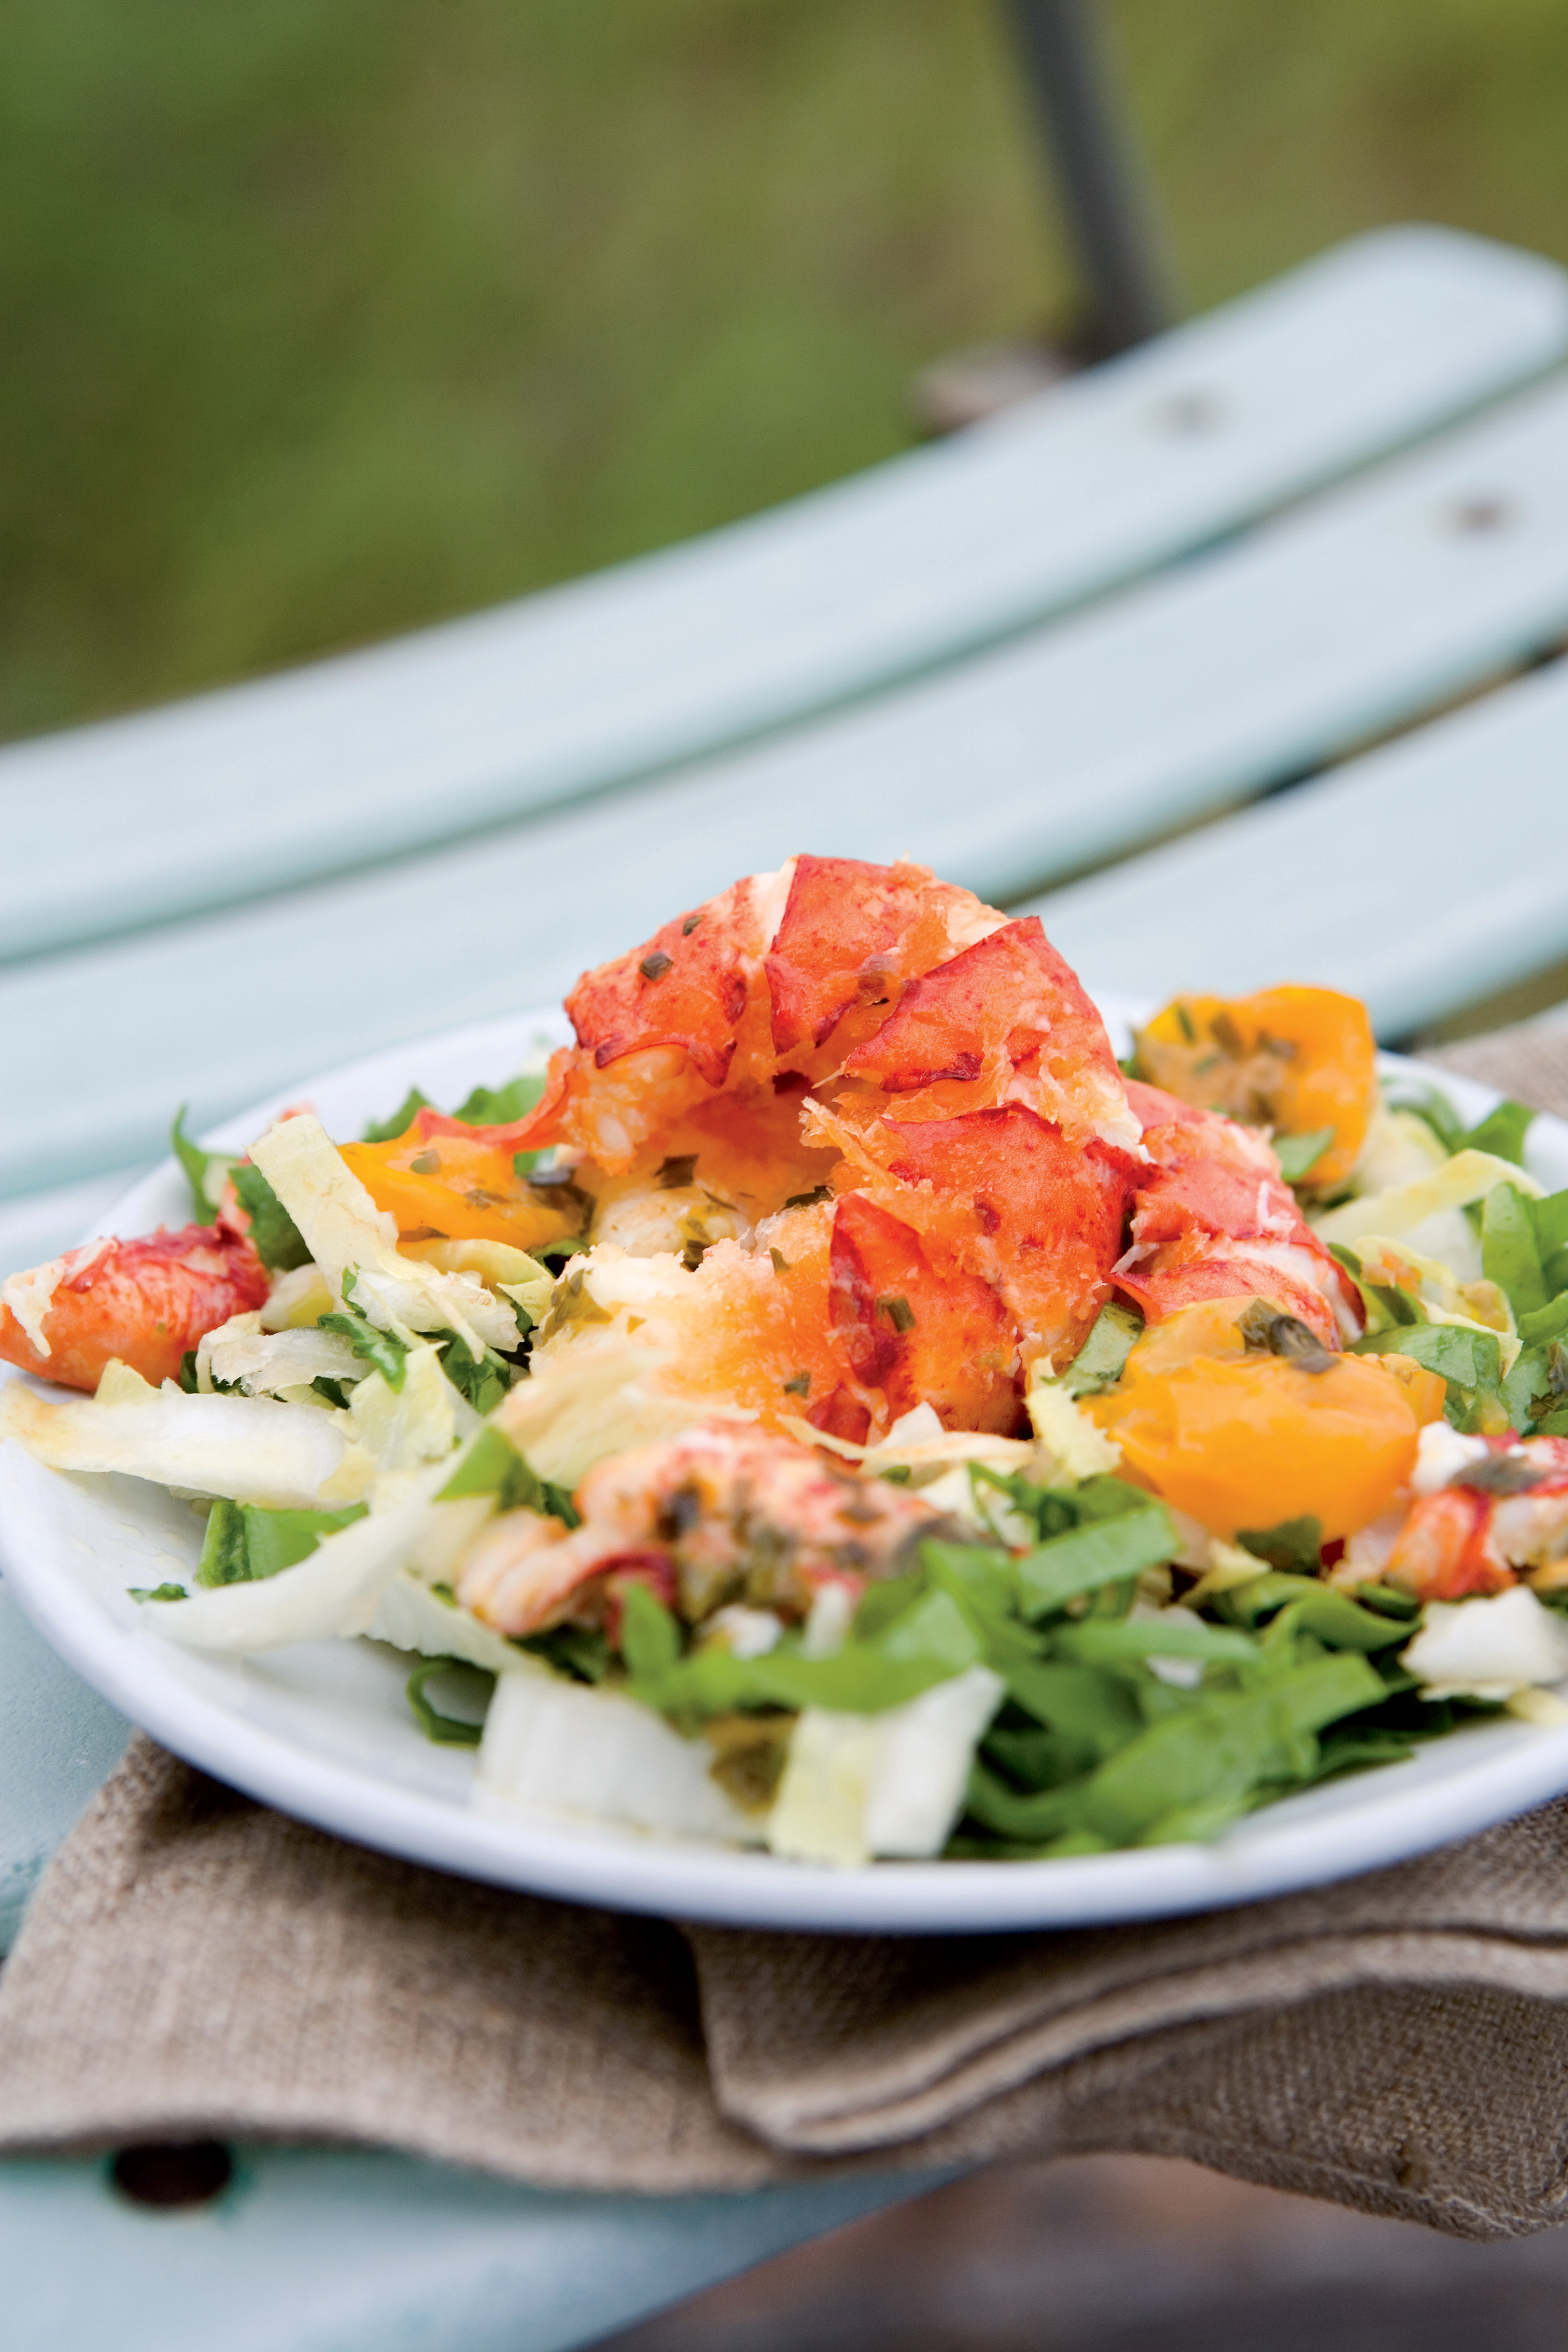 Crispy Lobster-Tail and Pea-Tendril Salad With Warmed Lobster Vinaigrette - New England Today